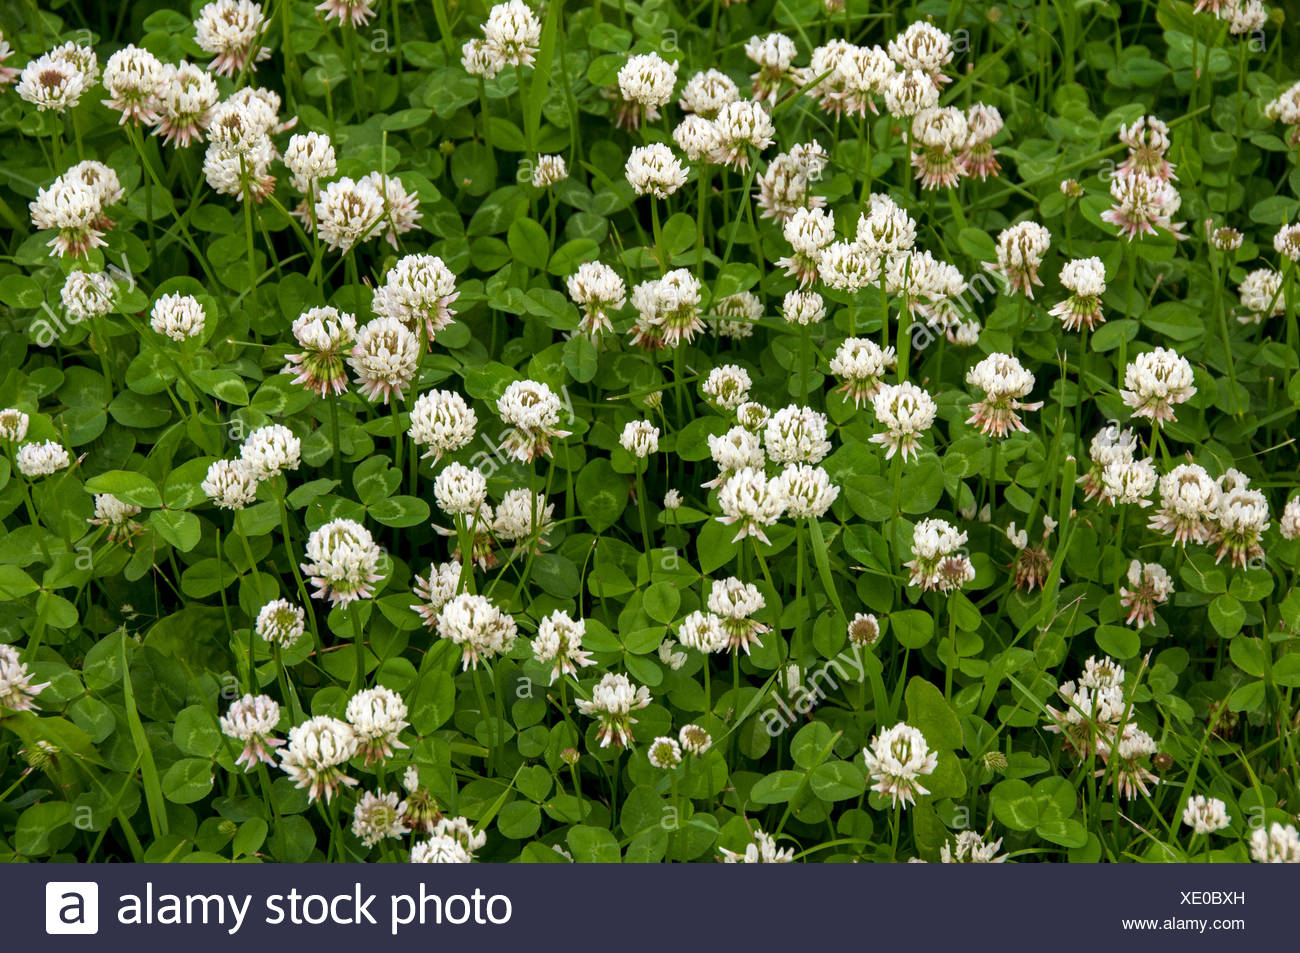 White Dutch Clover on lawn, Thunder Bay, ON, Canada - Stock Image